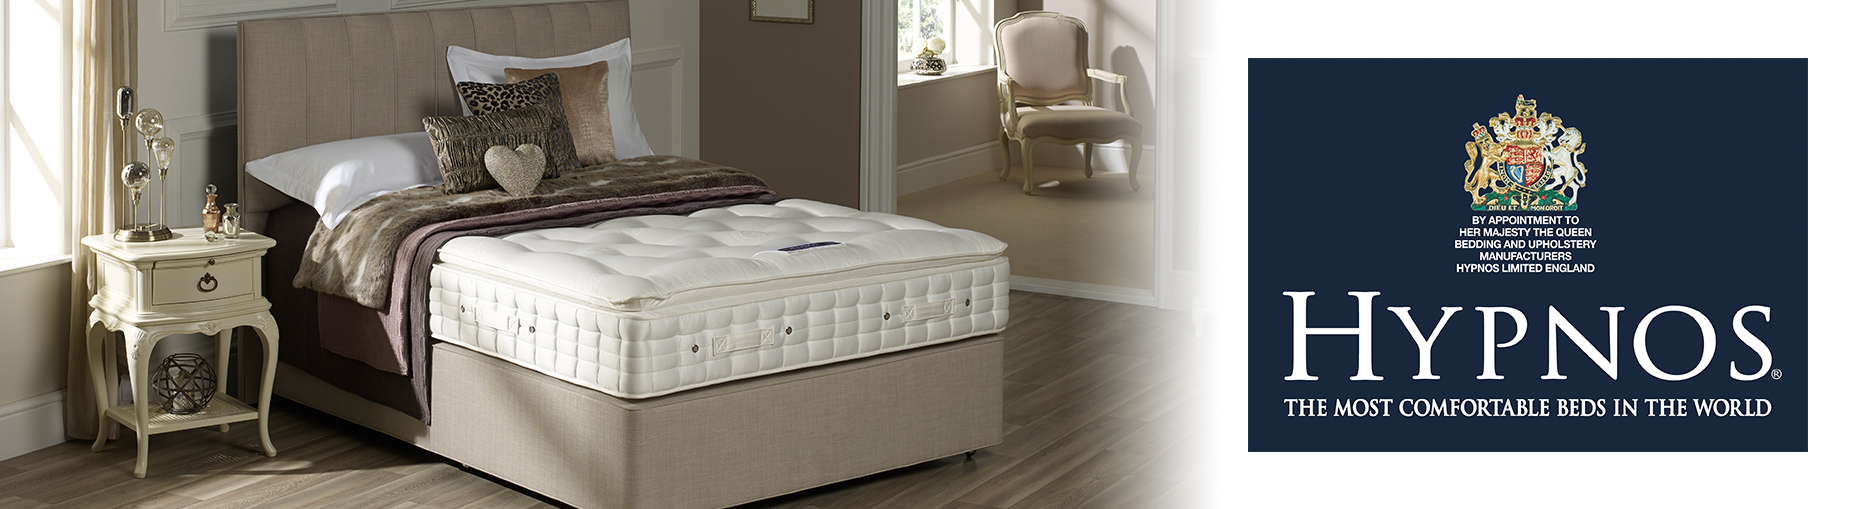 Hypnos Beds at Forrest Furnishing